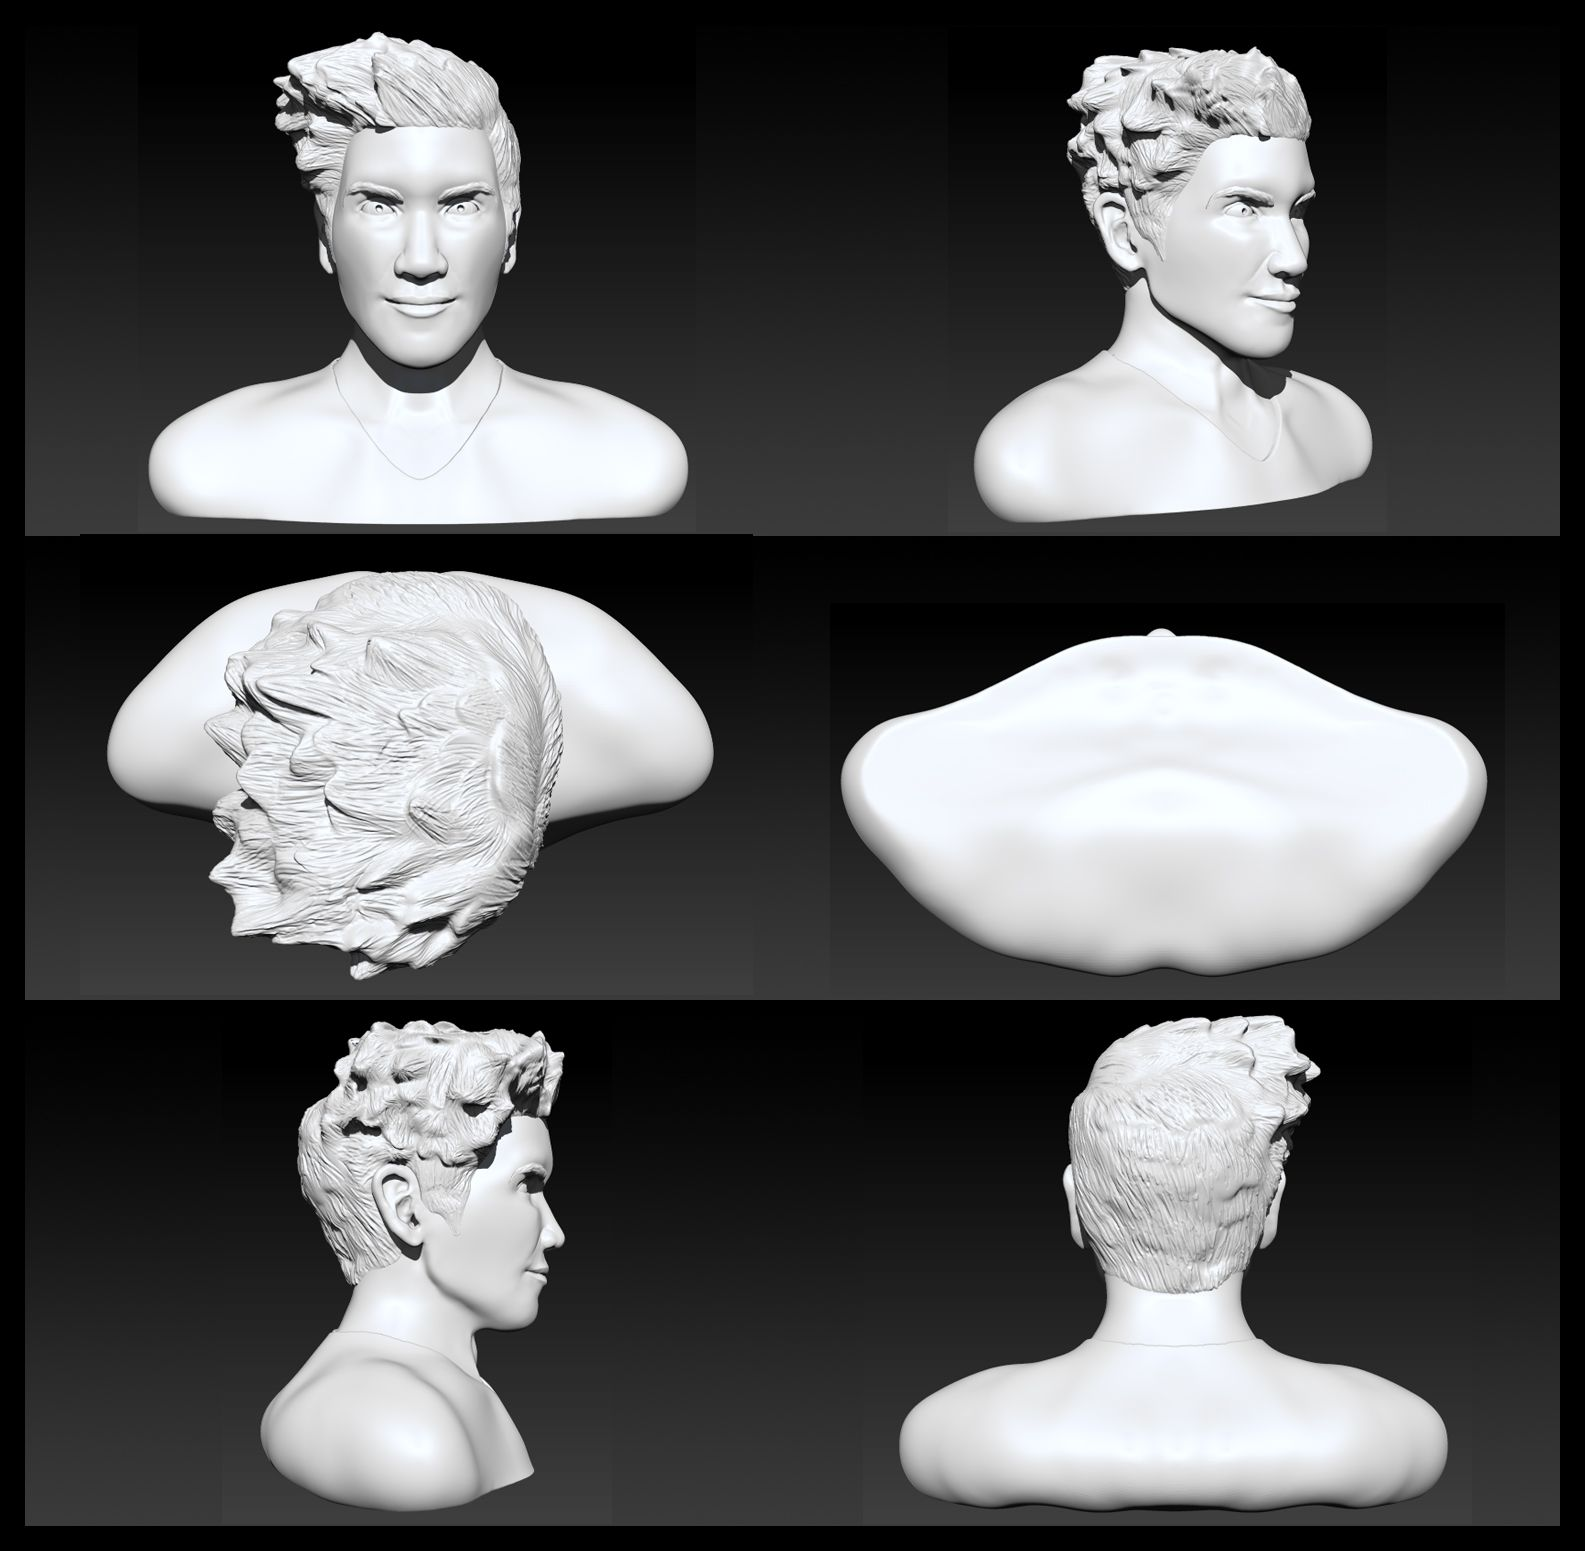 Render Comp. v1 for the Human Bust project in PFP.